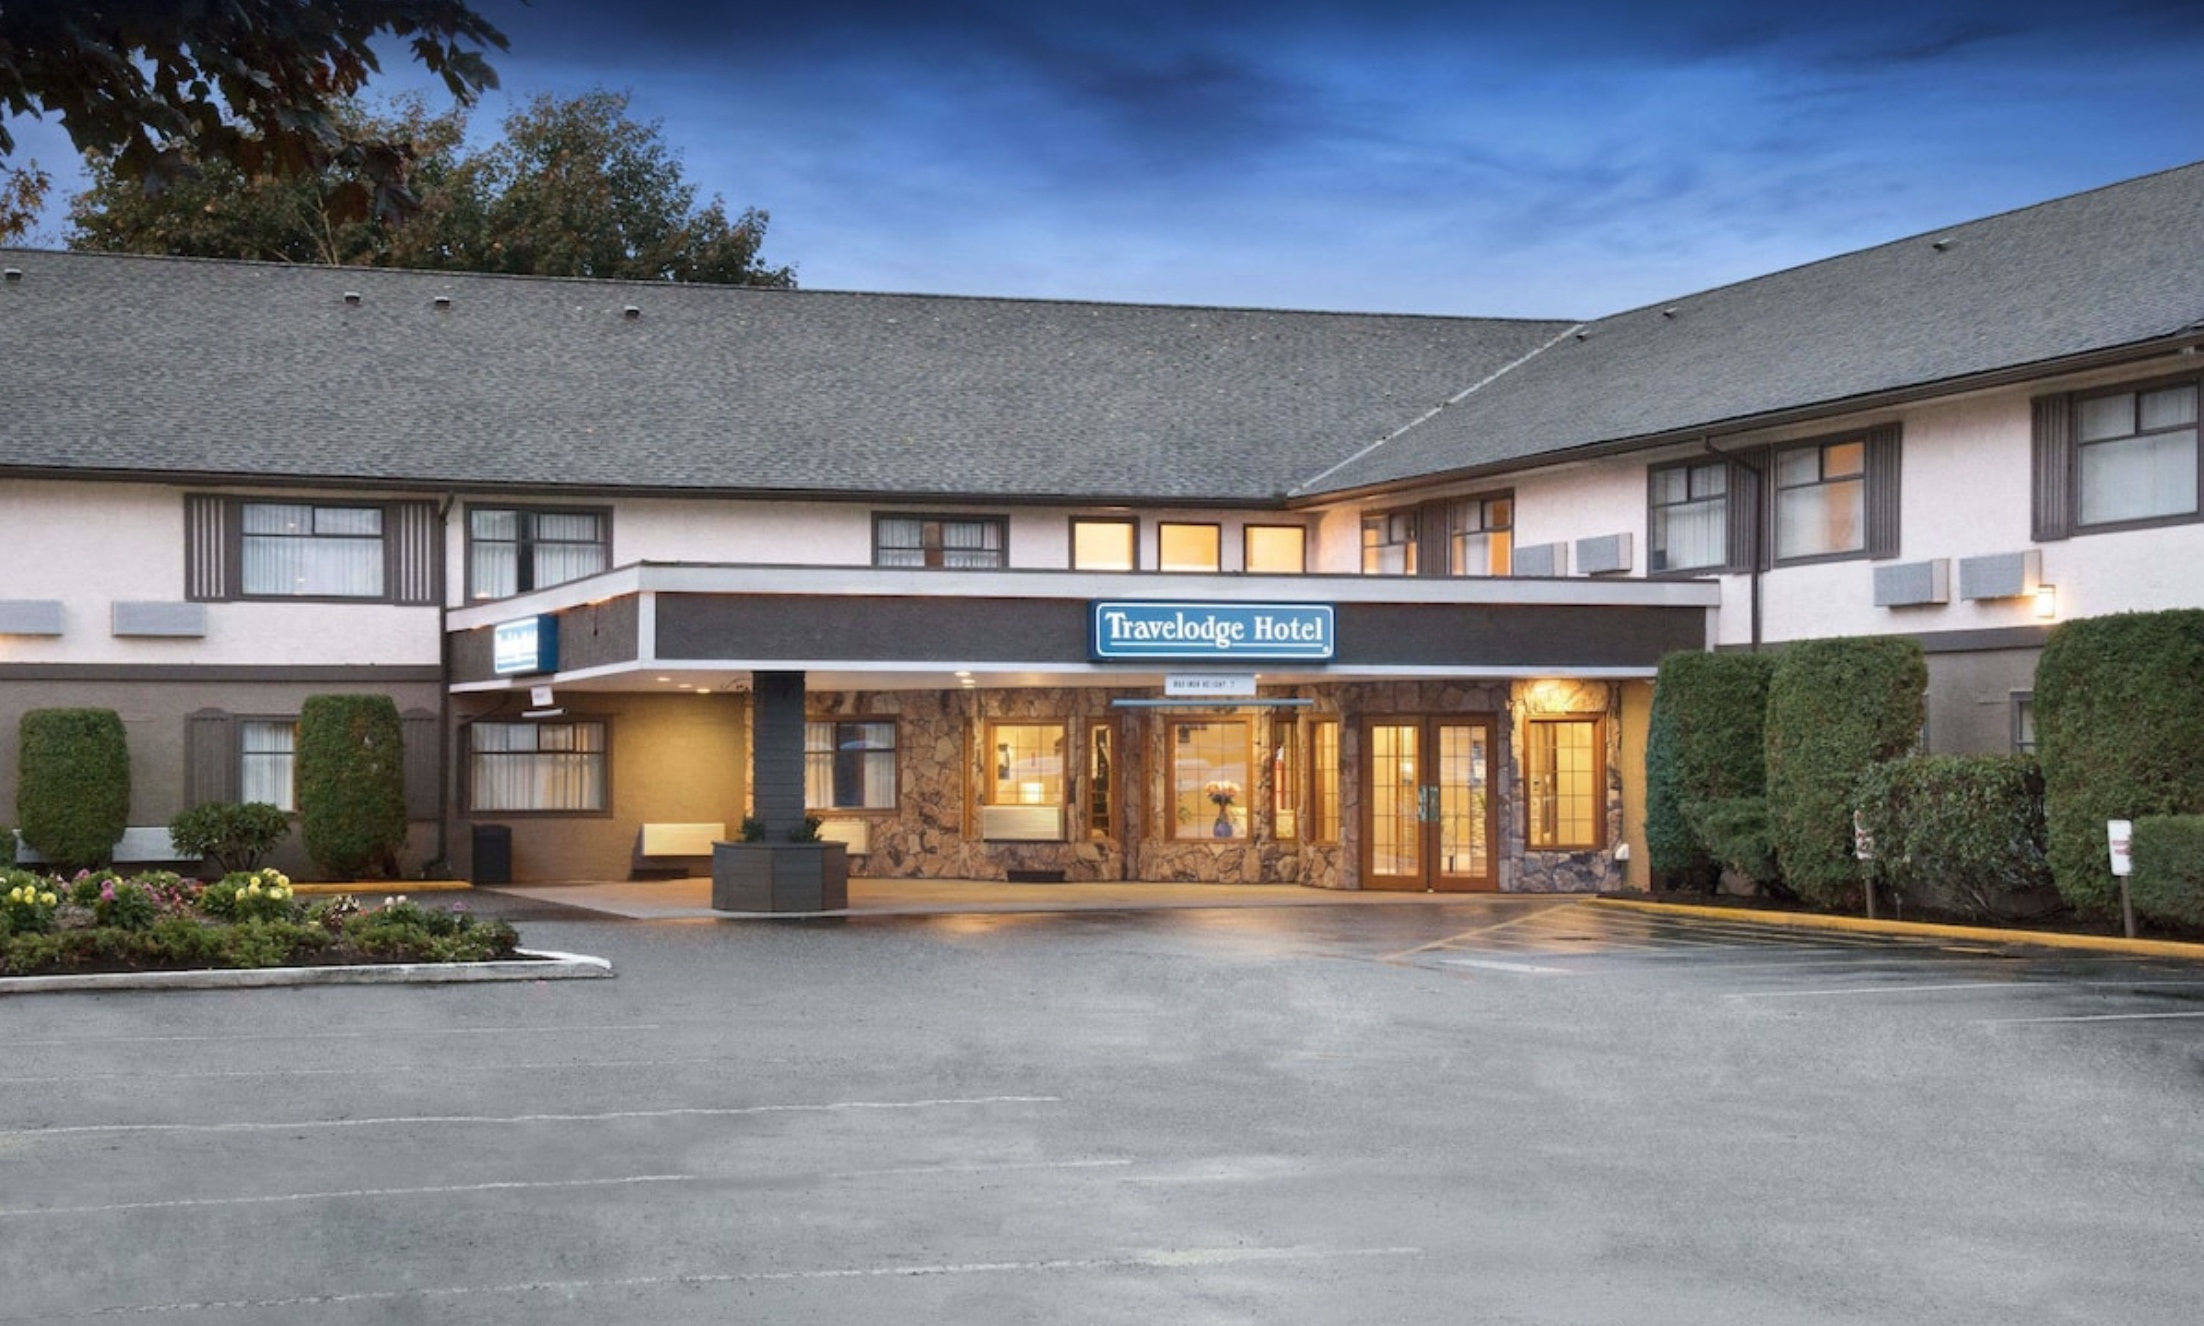 Travelodge Hotel in Chilliwack